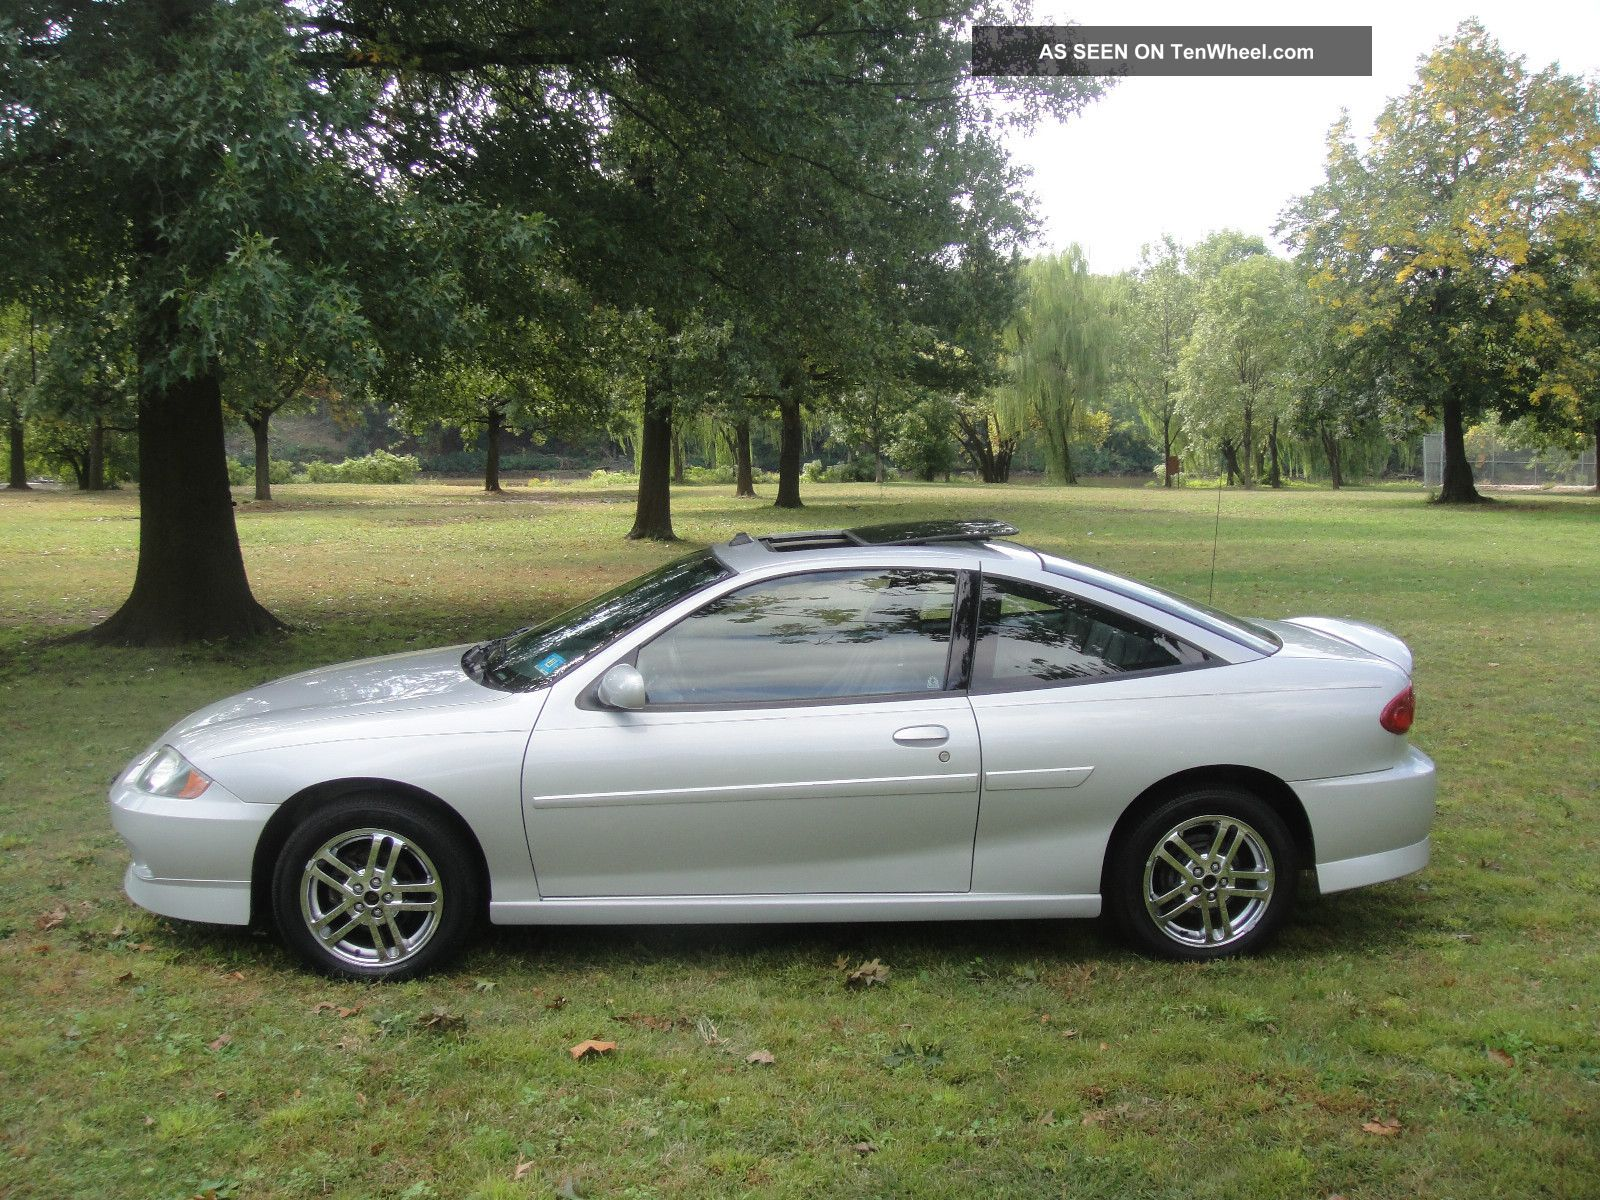 2005 chevrolet cavalier ls sport coupe fully loaded cavalier photo. Cars Review. Best American Auto & Cars Review